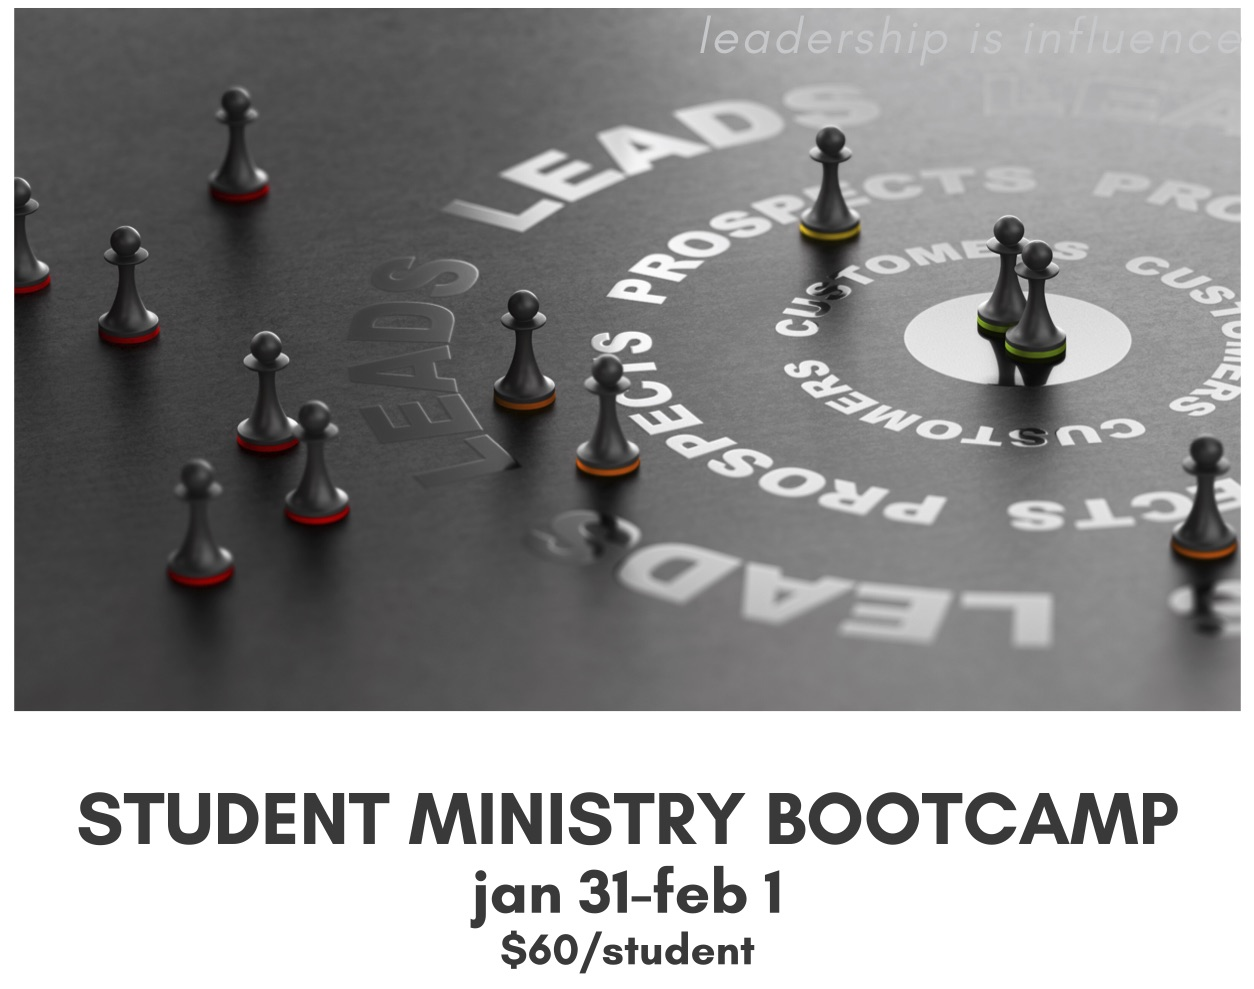 Student Ministry Bootcamp